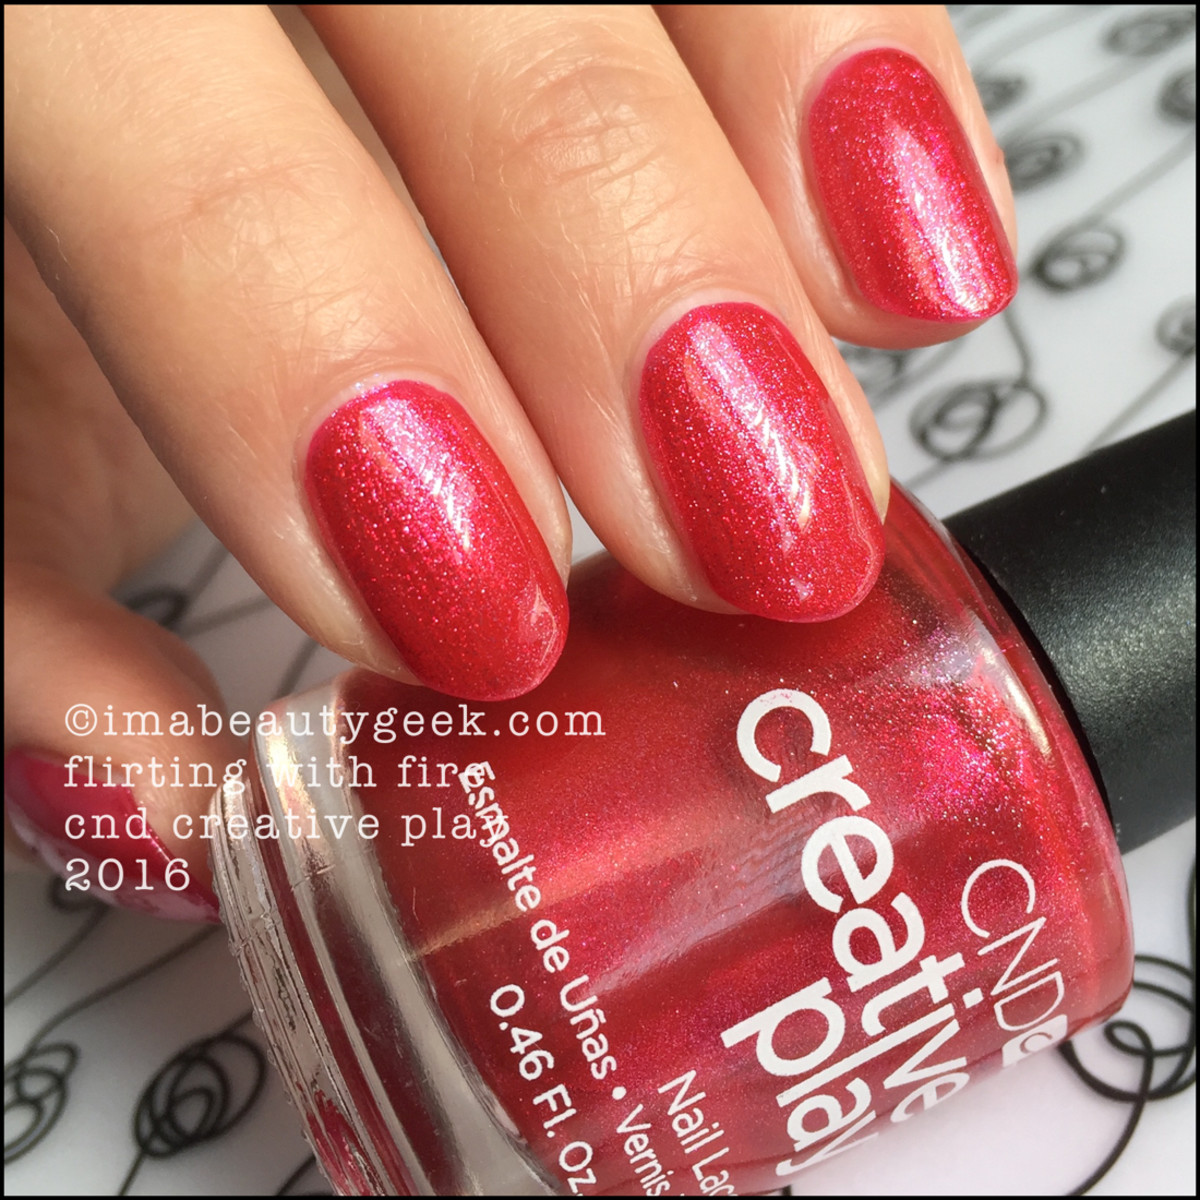 CND Creative Play Flirting with Fire_CND Creative Play Nail Polish Swatches